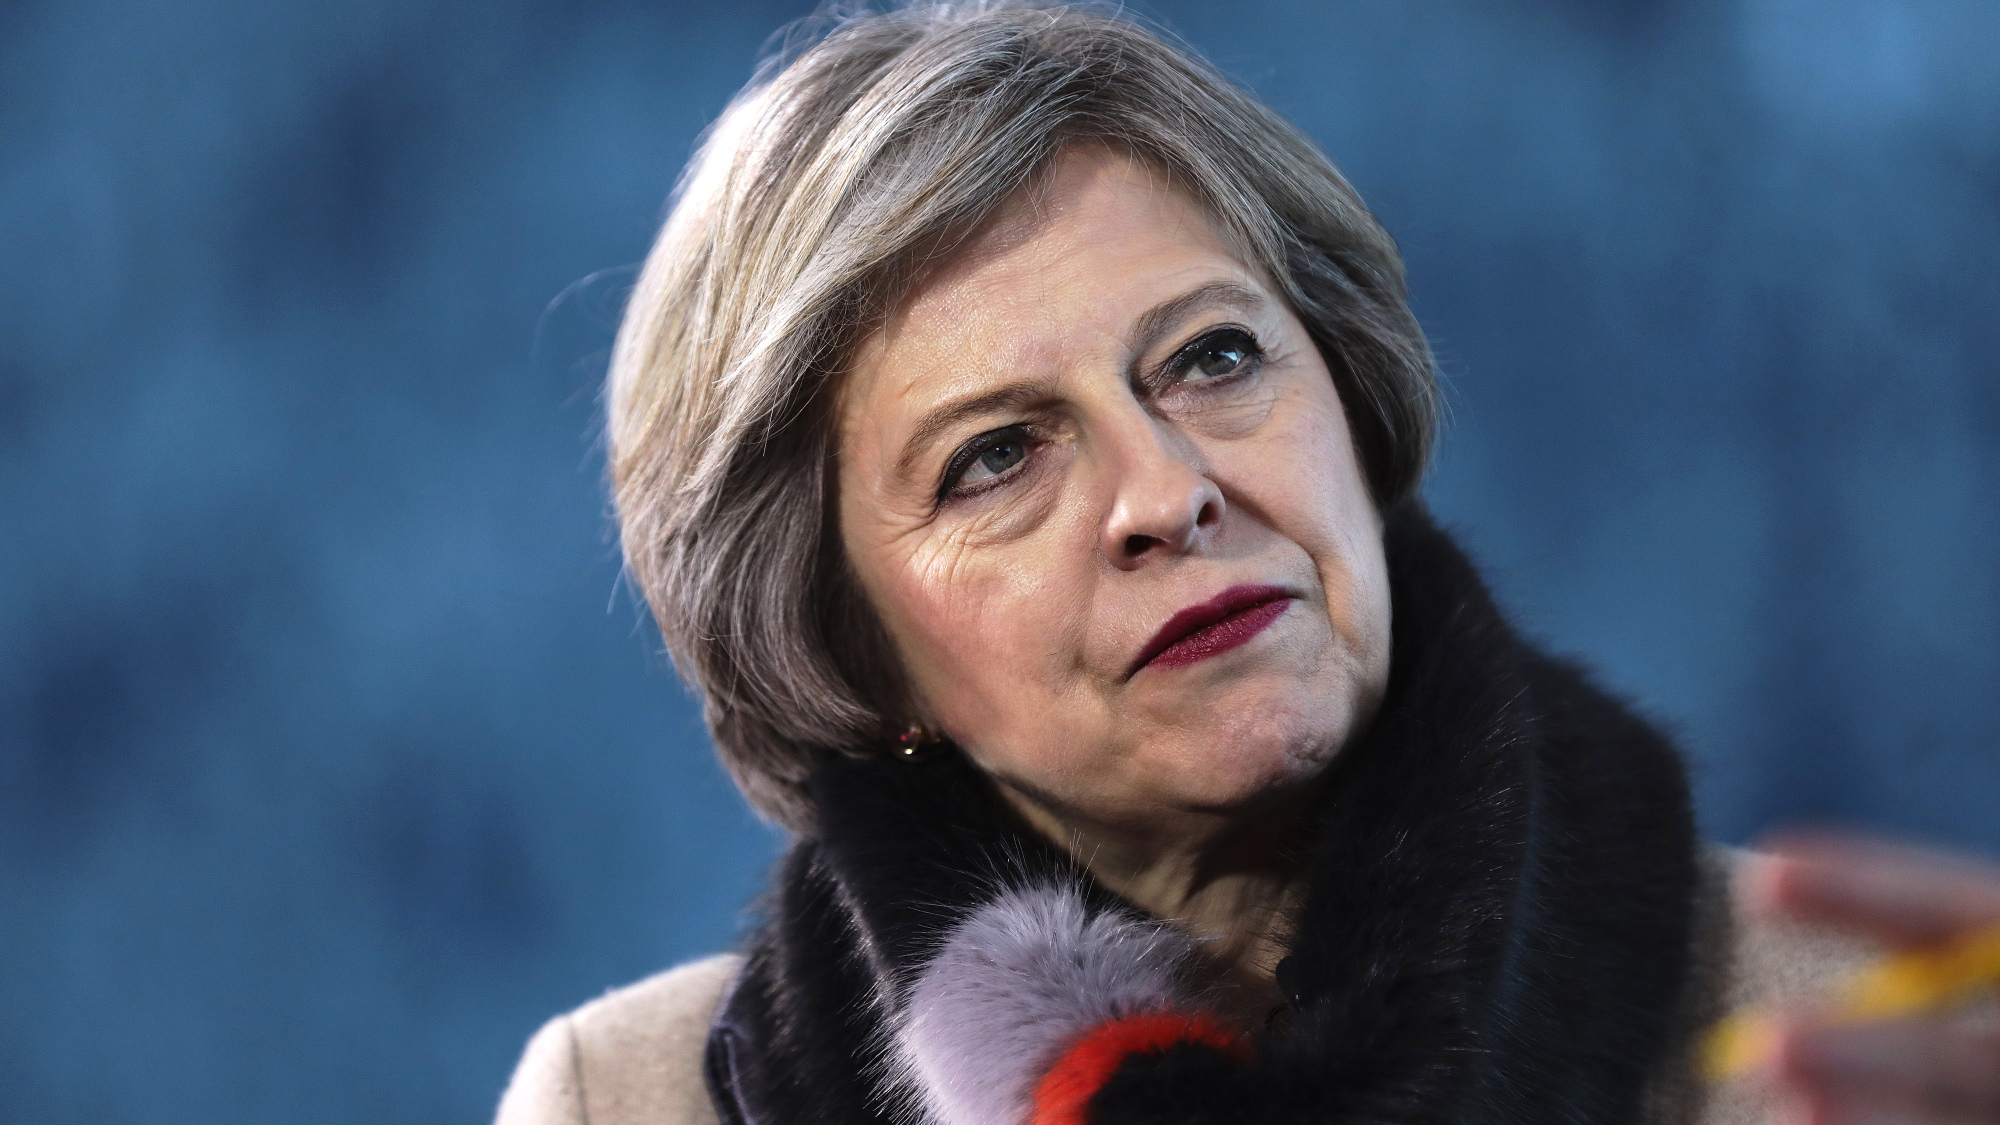 'the uk prime minister is the The proper way to address the british prime minister in a letter is to begin by calling him or her the honourable if he or she is a member of the privy council of the united kingdom, he or she should be addressed as the right honourable.